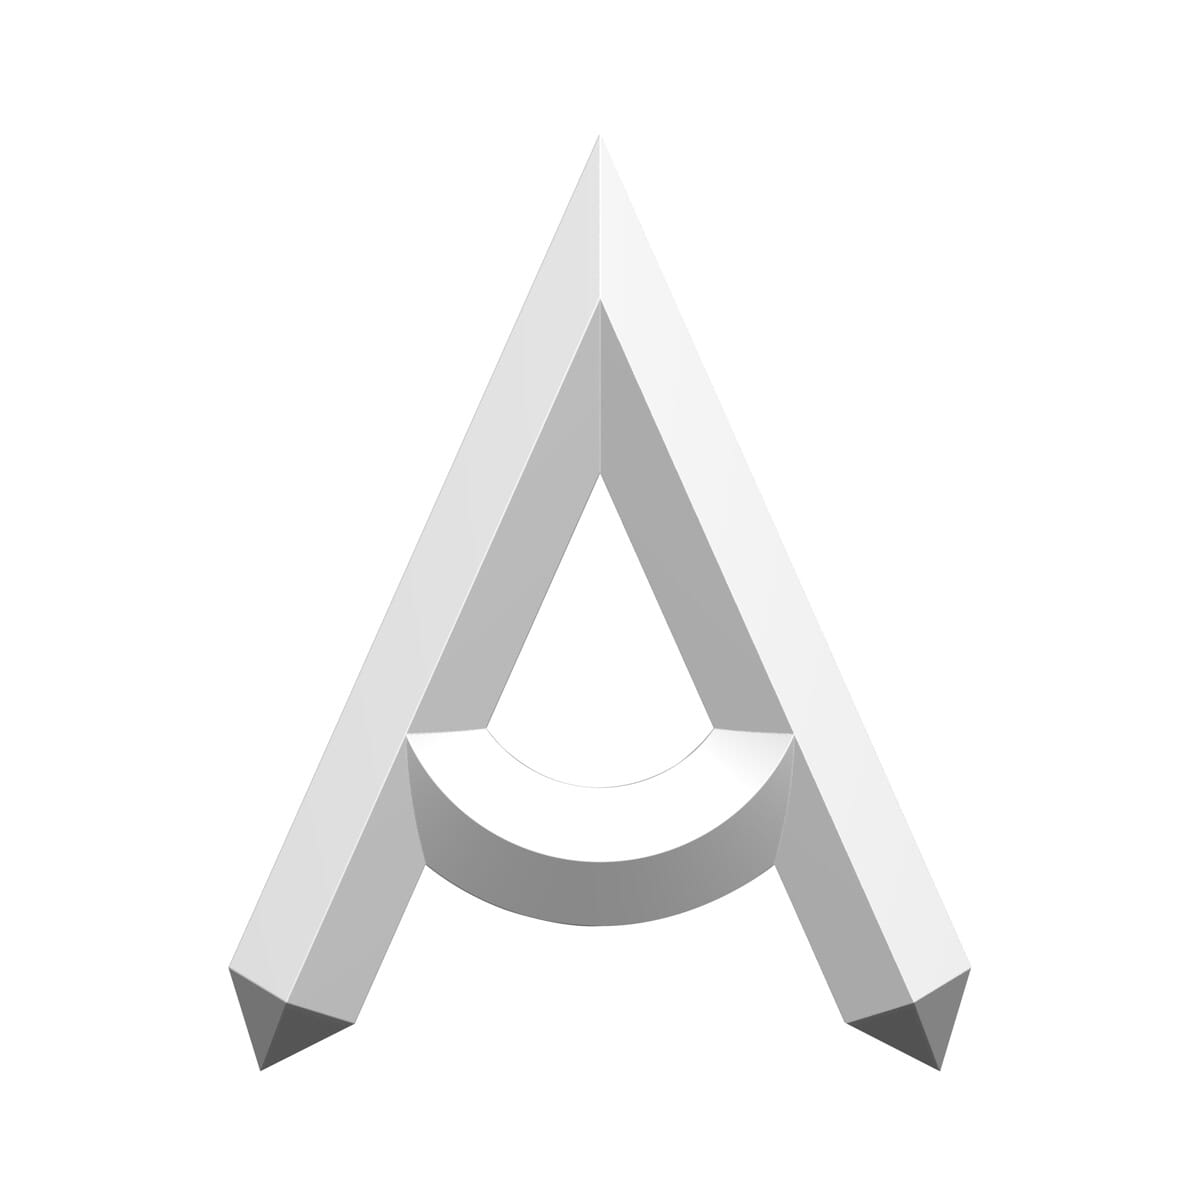 1/2-13 UNC x 2 inch Imperial Full Thread Carriage Bolts (ANSI B18.5) - Black A2 Stainless Steel